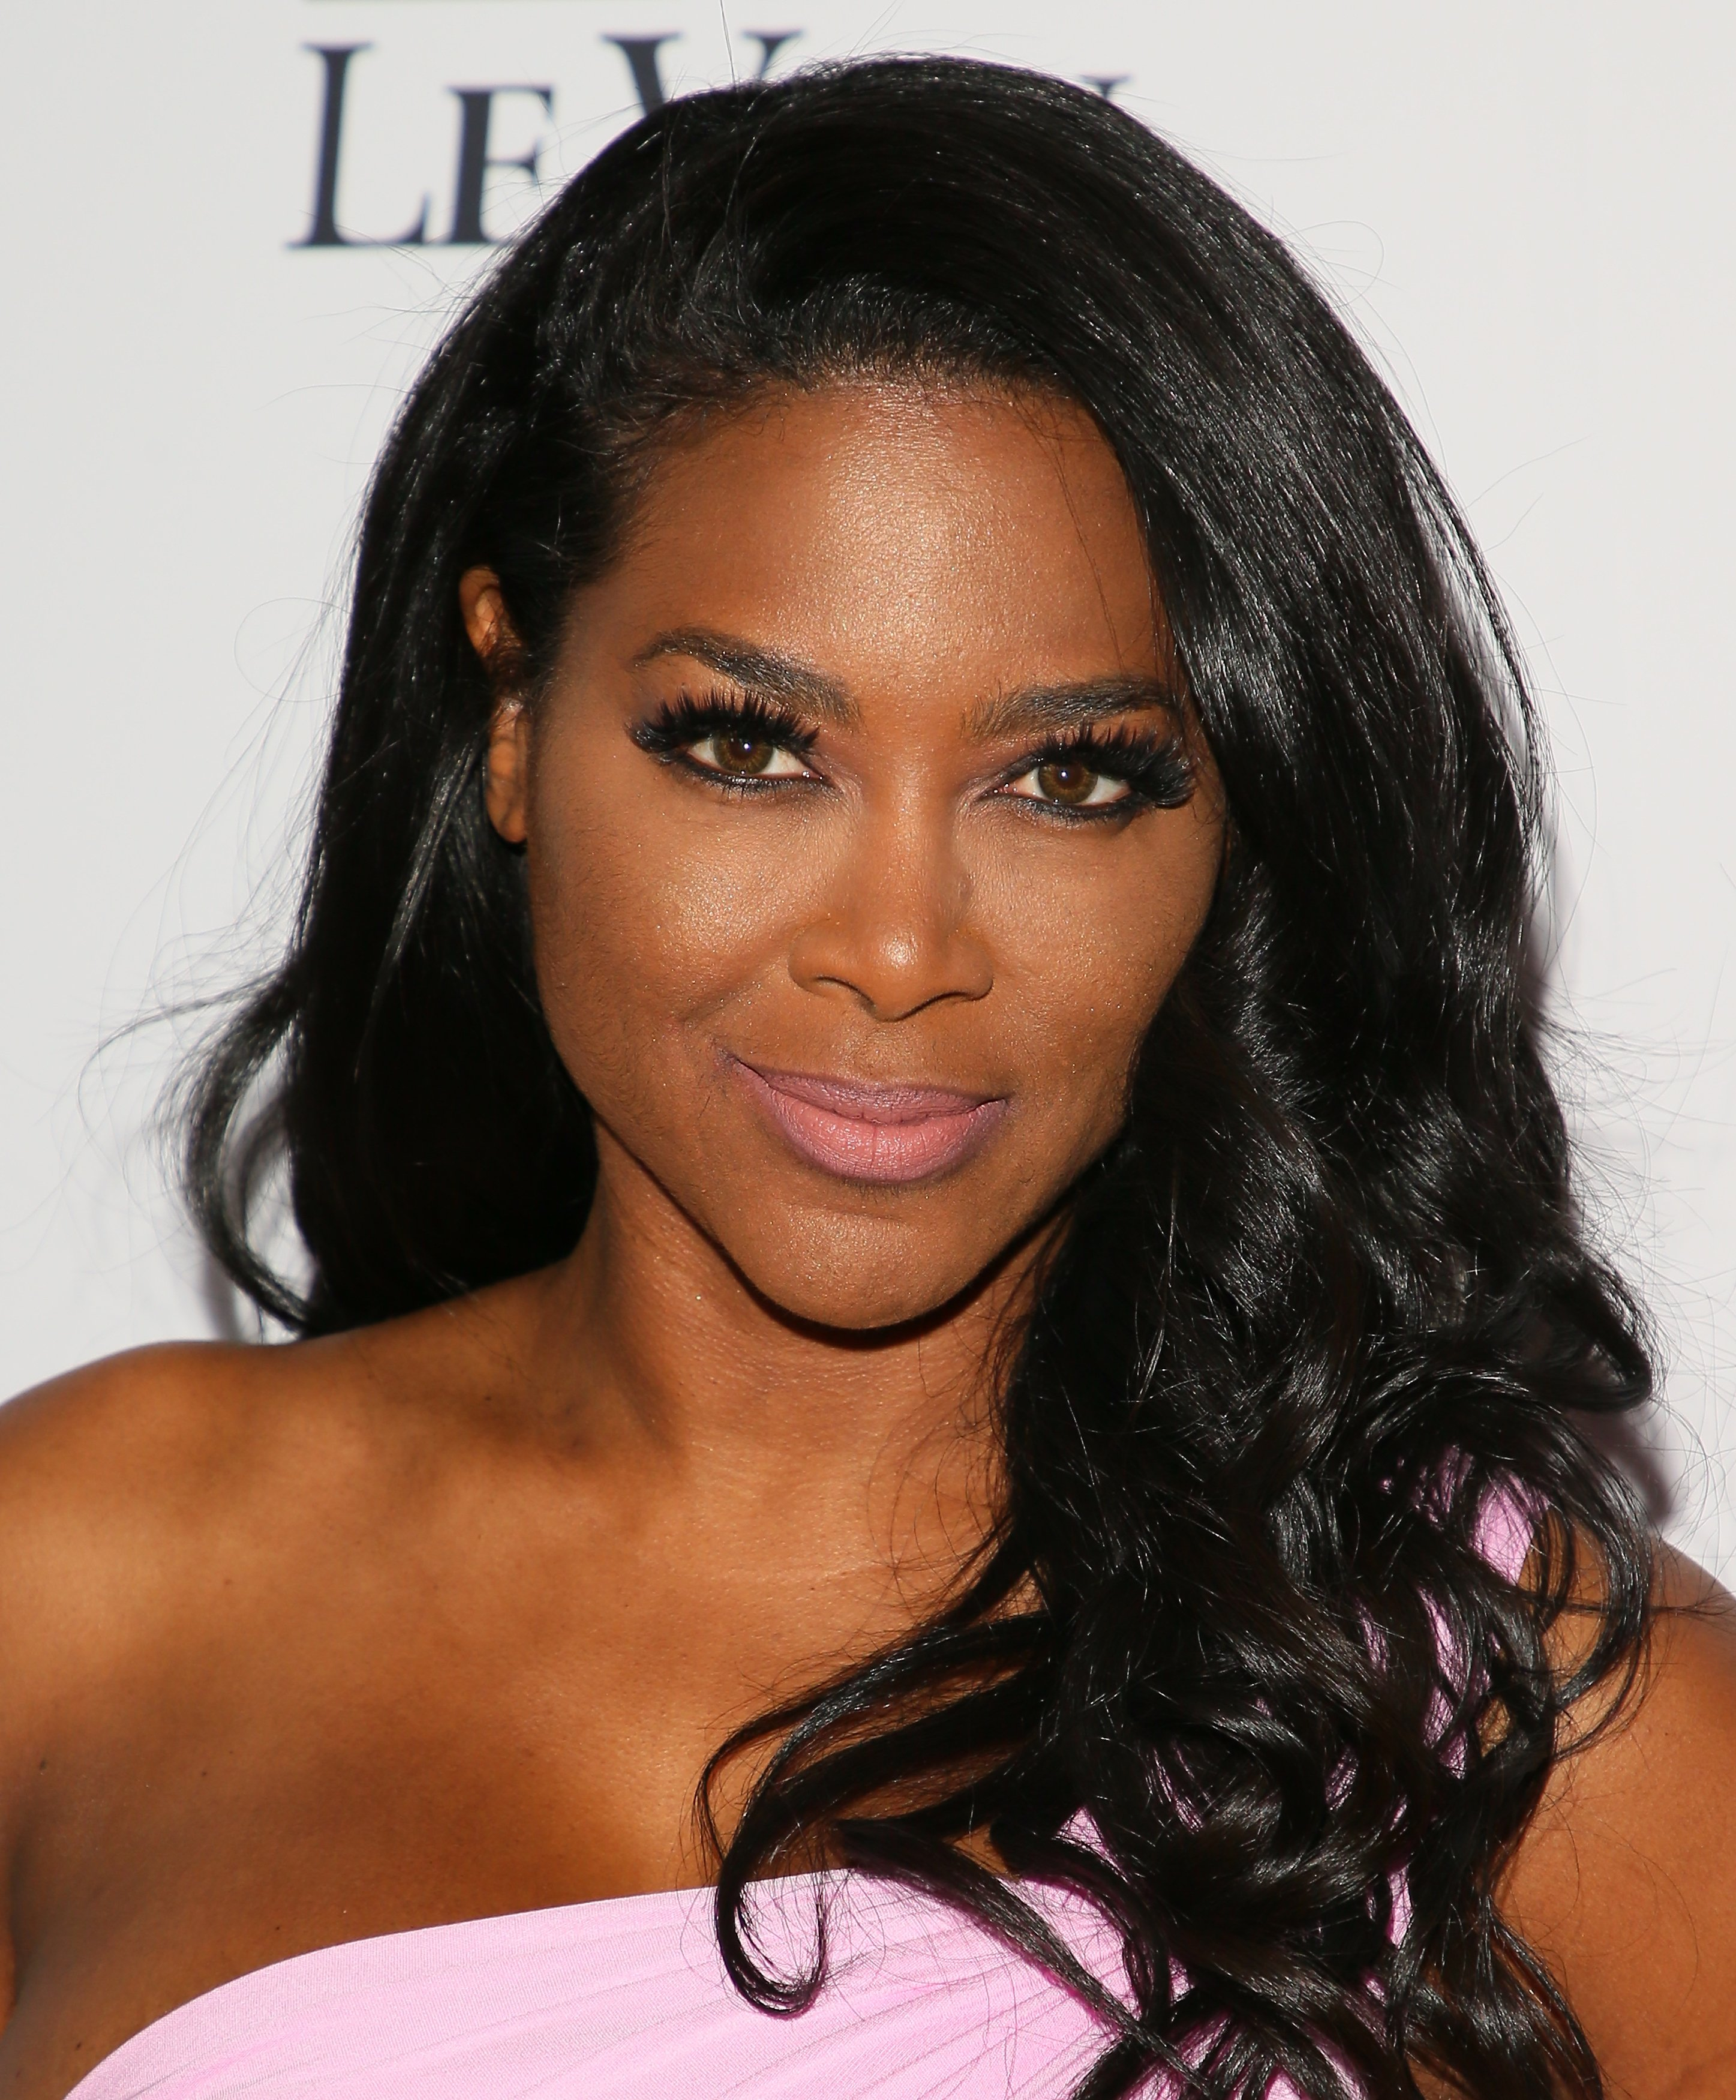 Kenya Moore at the OK! Magazine's Annual Pre-Oscar Event in California on Feb. 22, 2017 | Photo: Getty Images